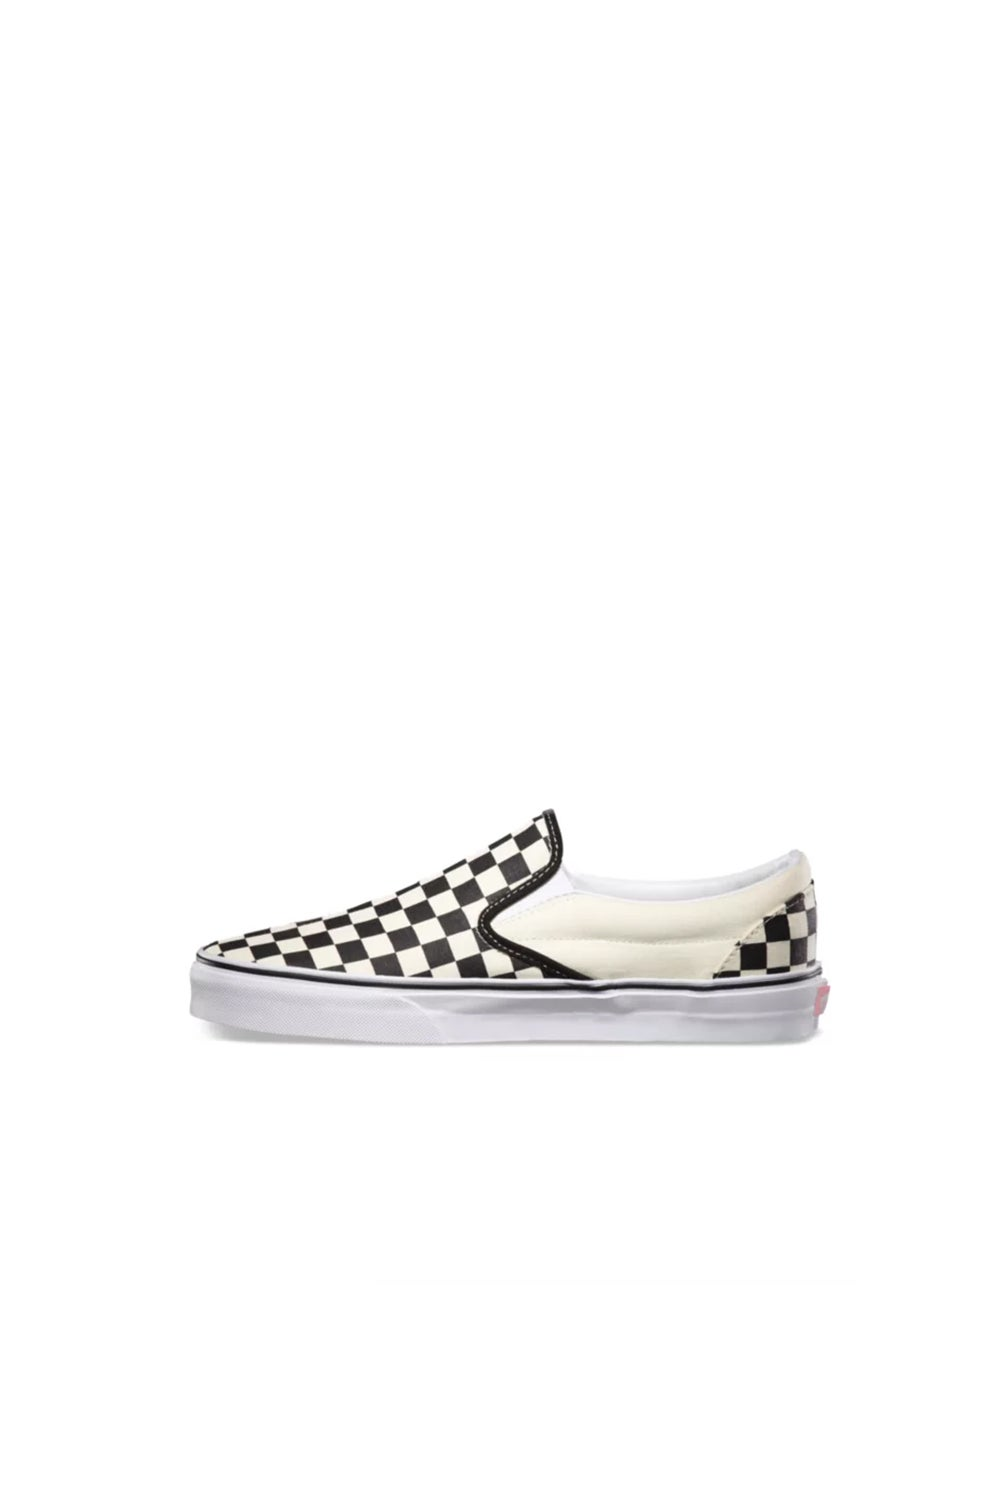 Vans Classic Slip On Black and White Checker